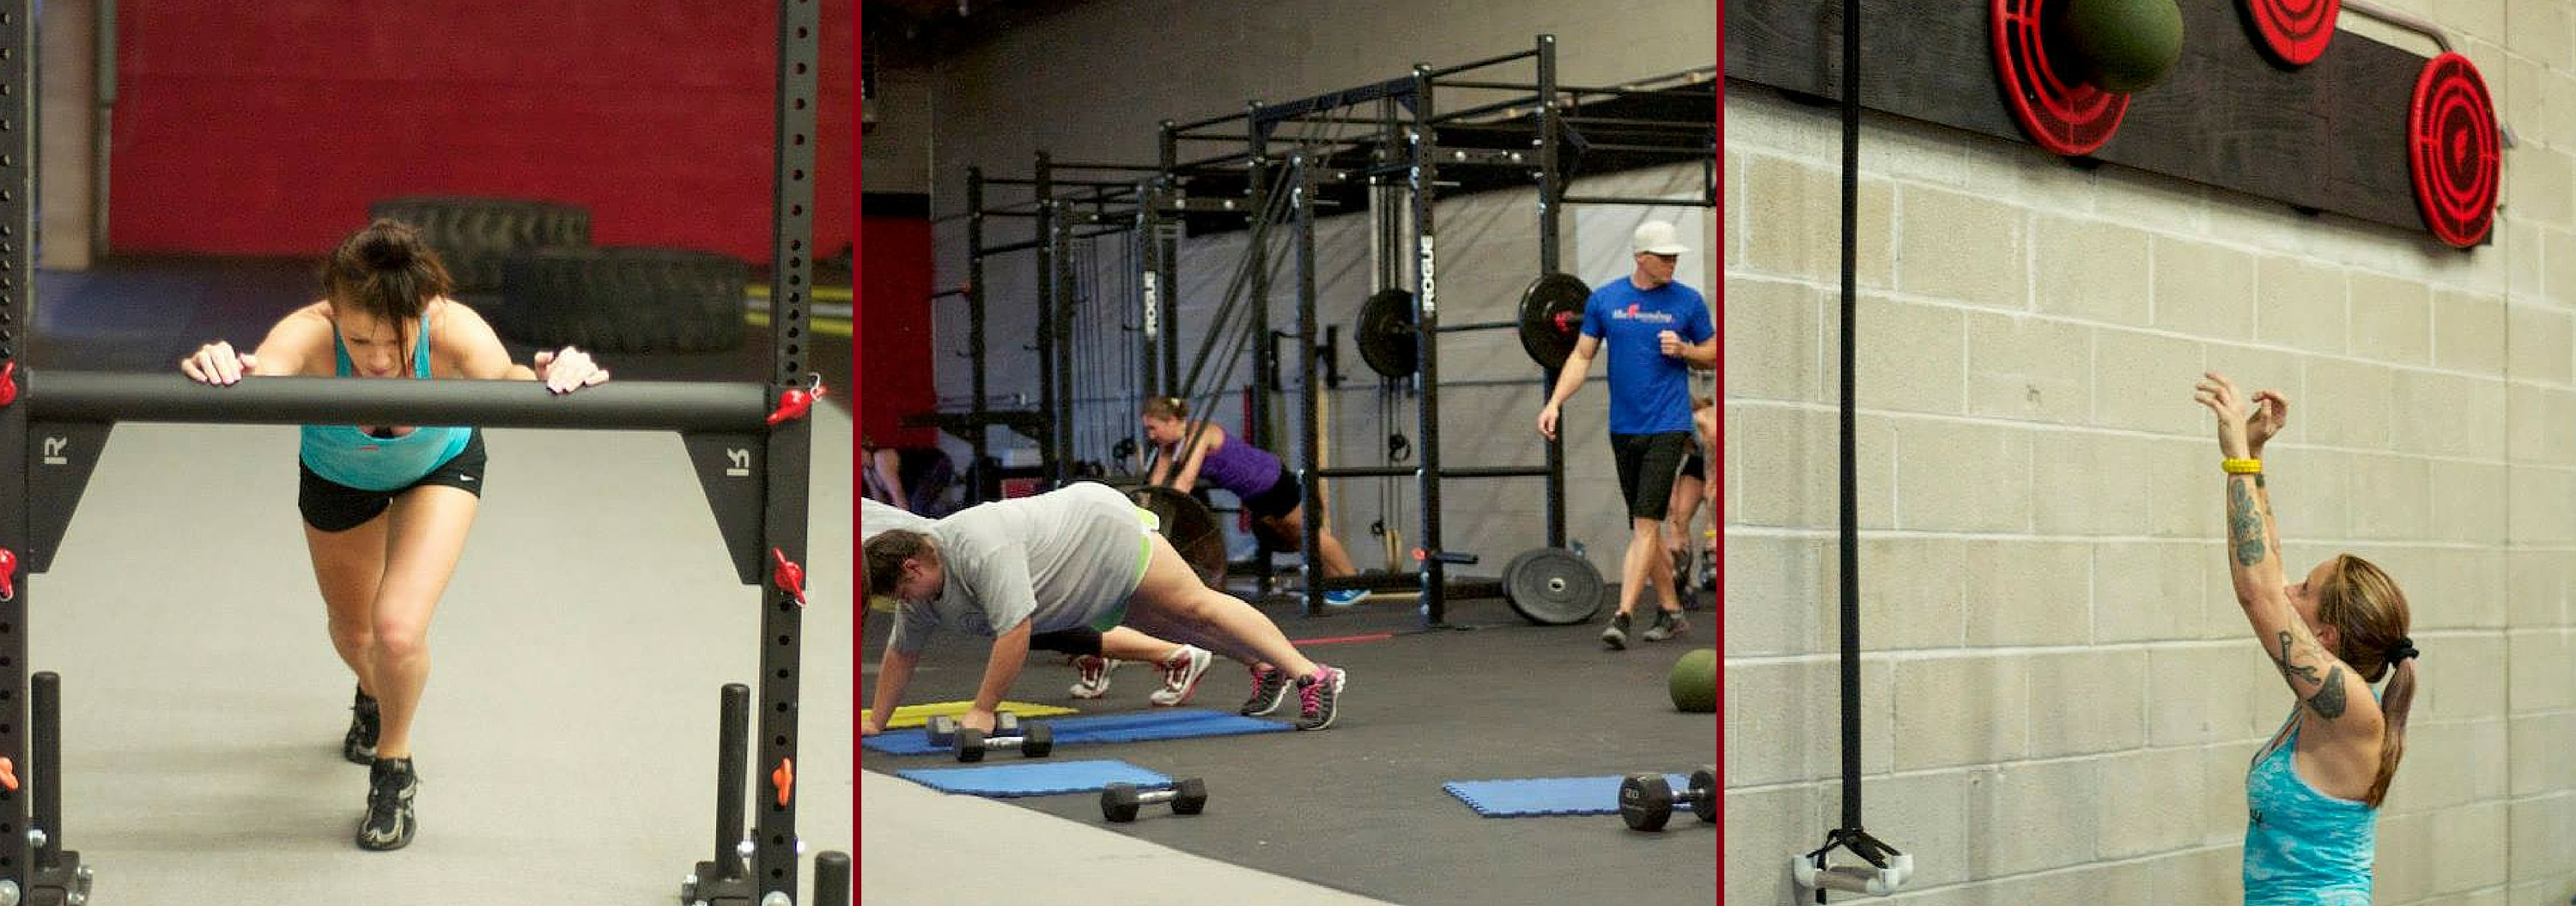 Different Workouts at The Foundry